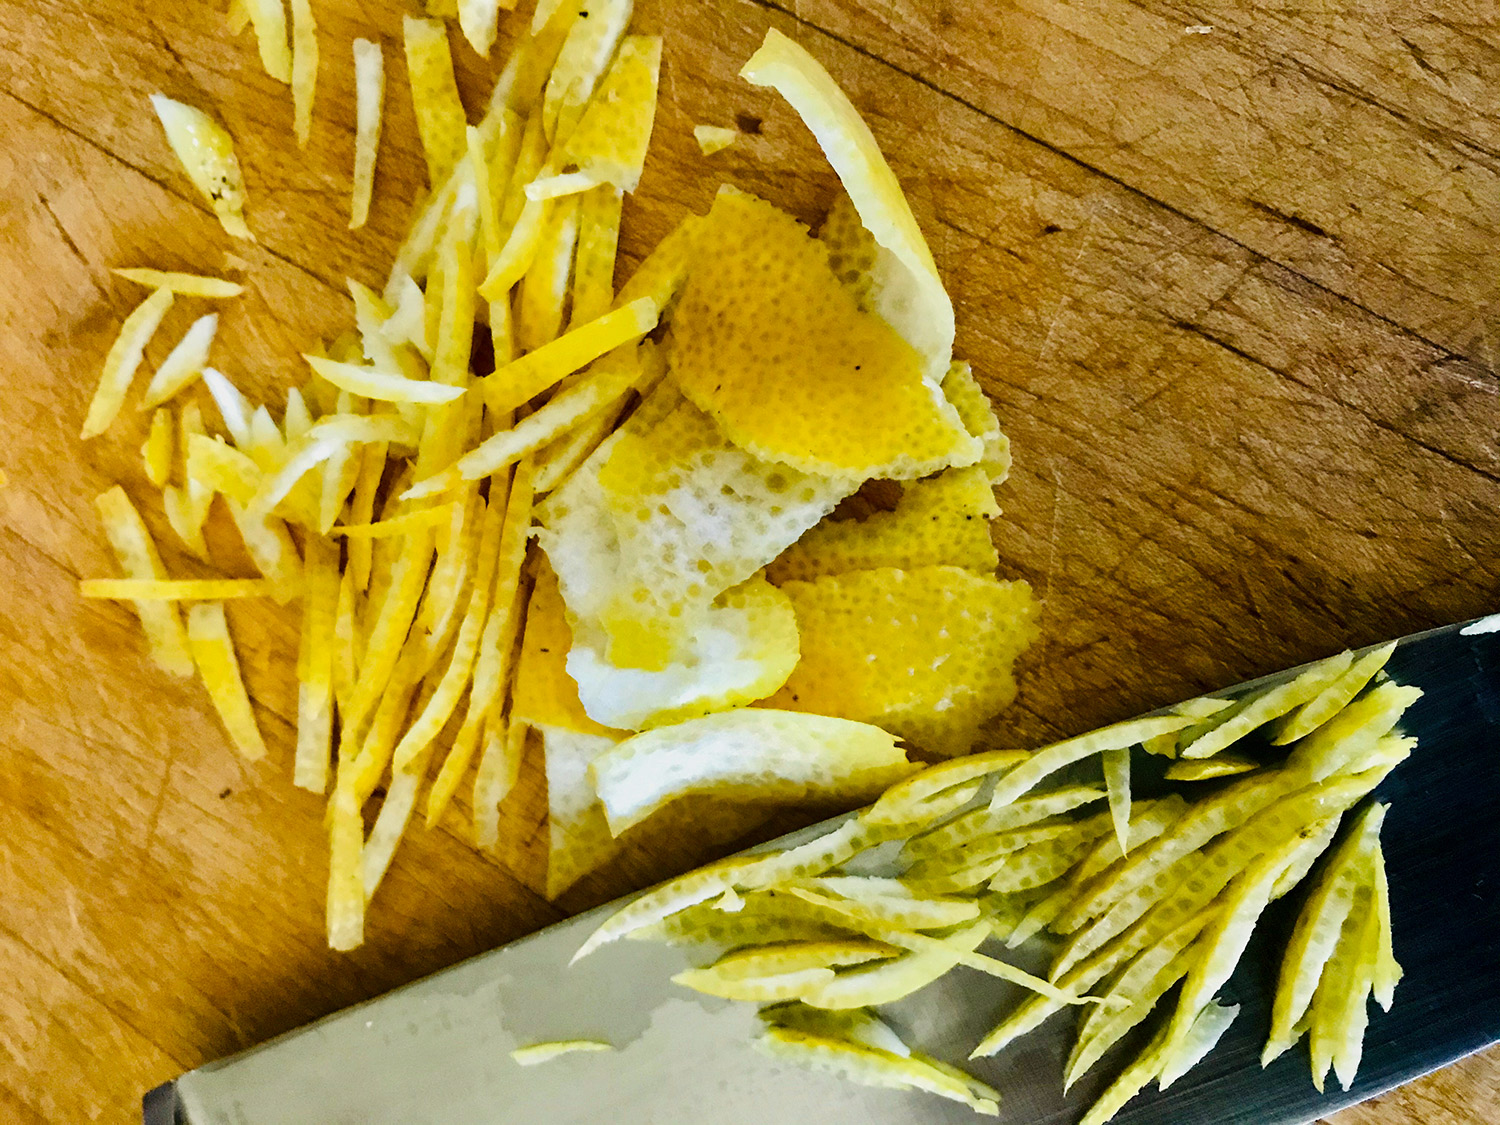 Lemon zest slices